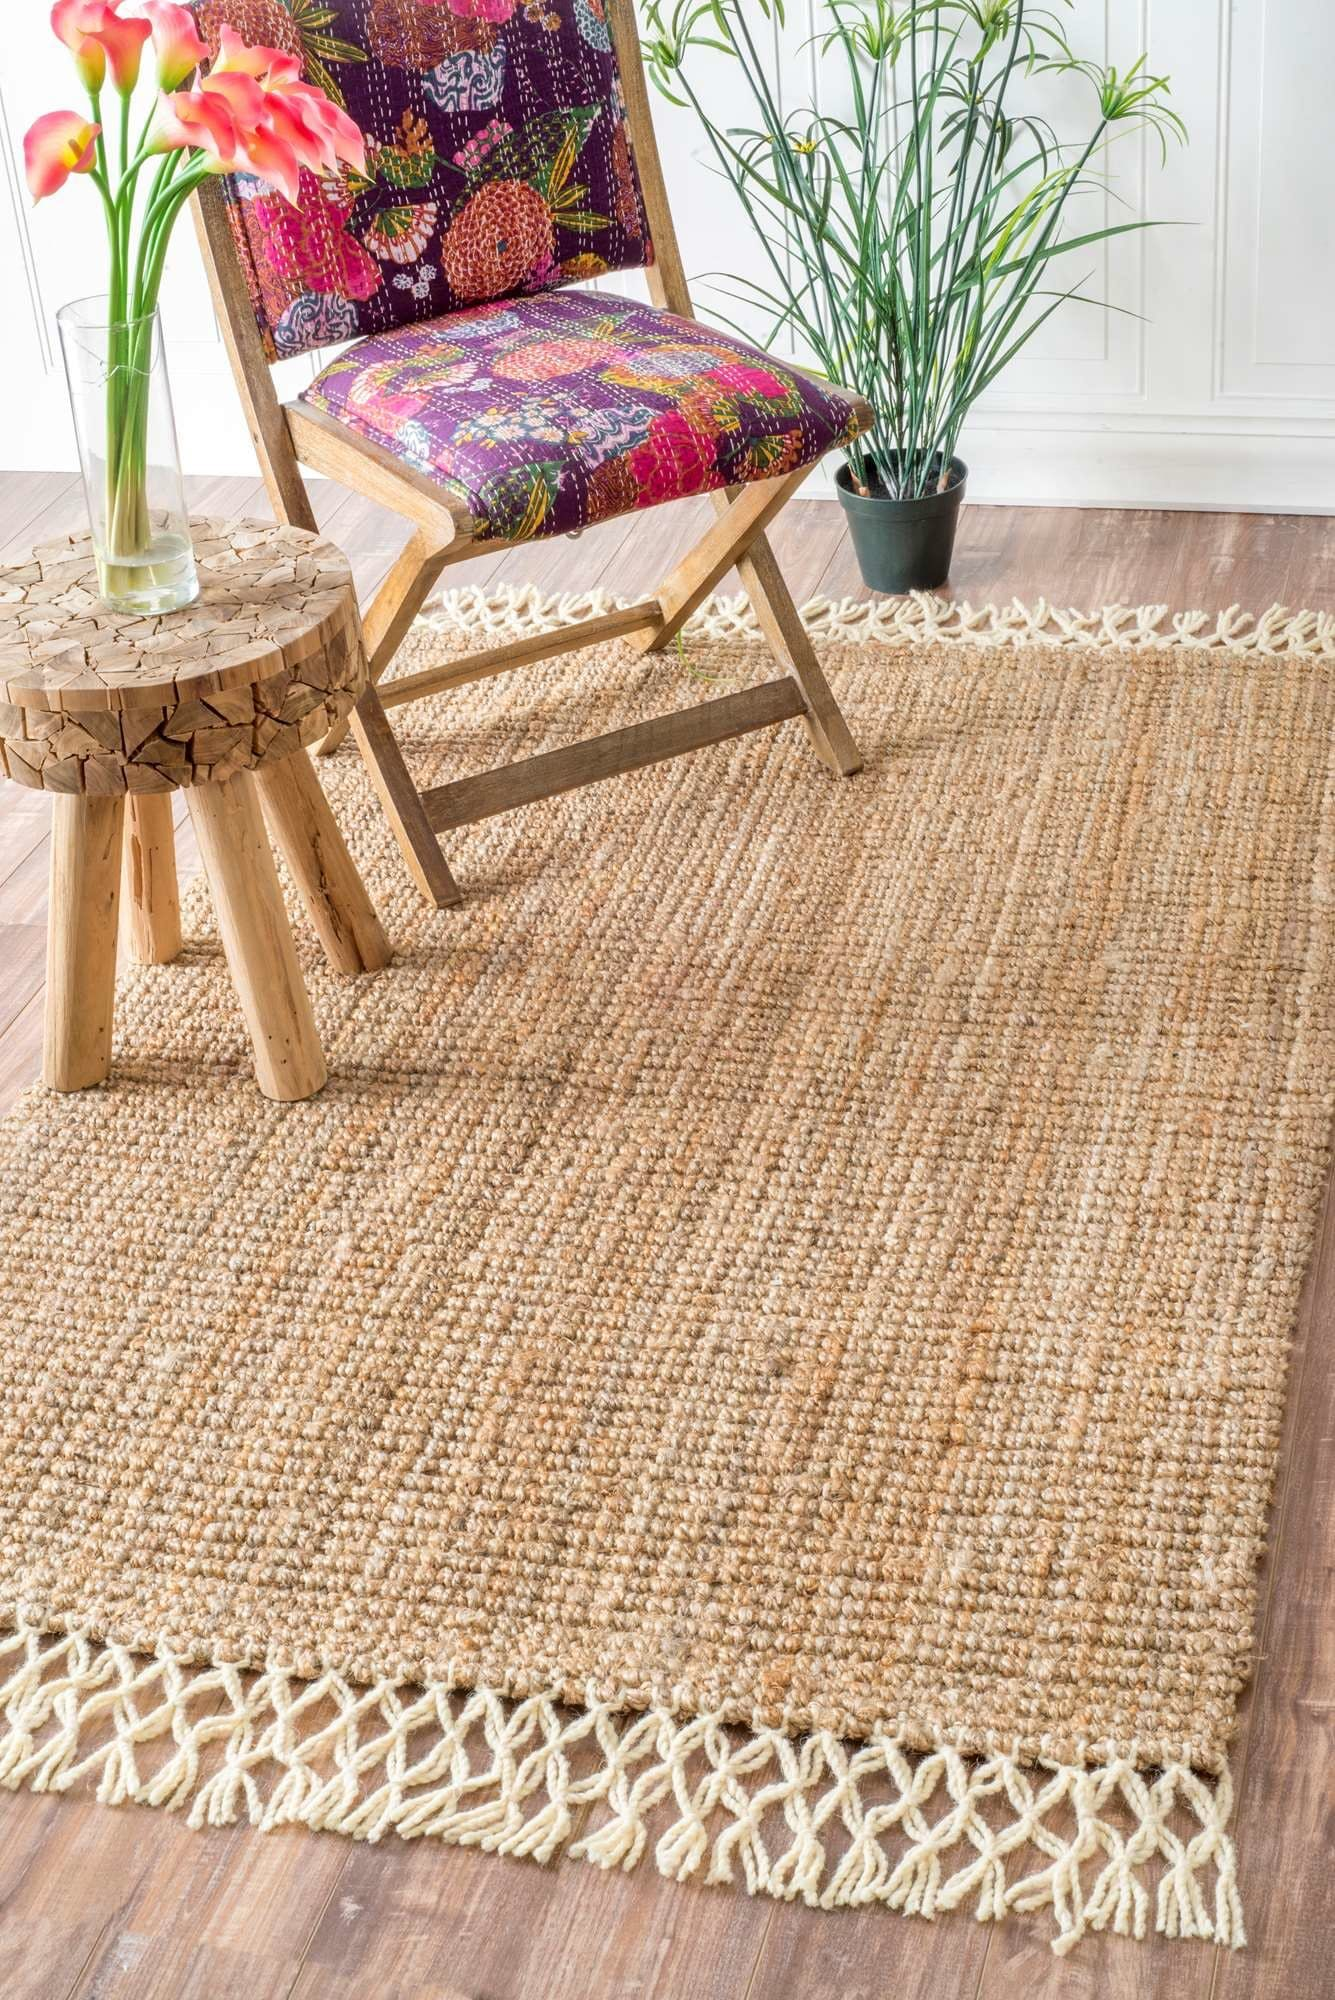 Ground Control 10 Area Rugs Under 100 Natural Rug Fringe Rugs